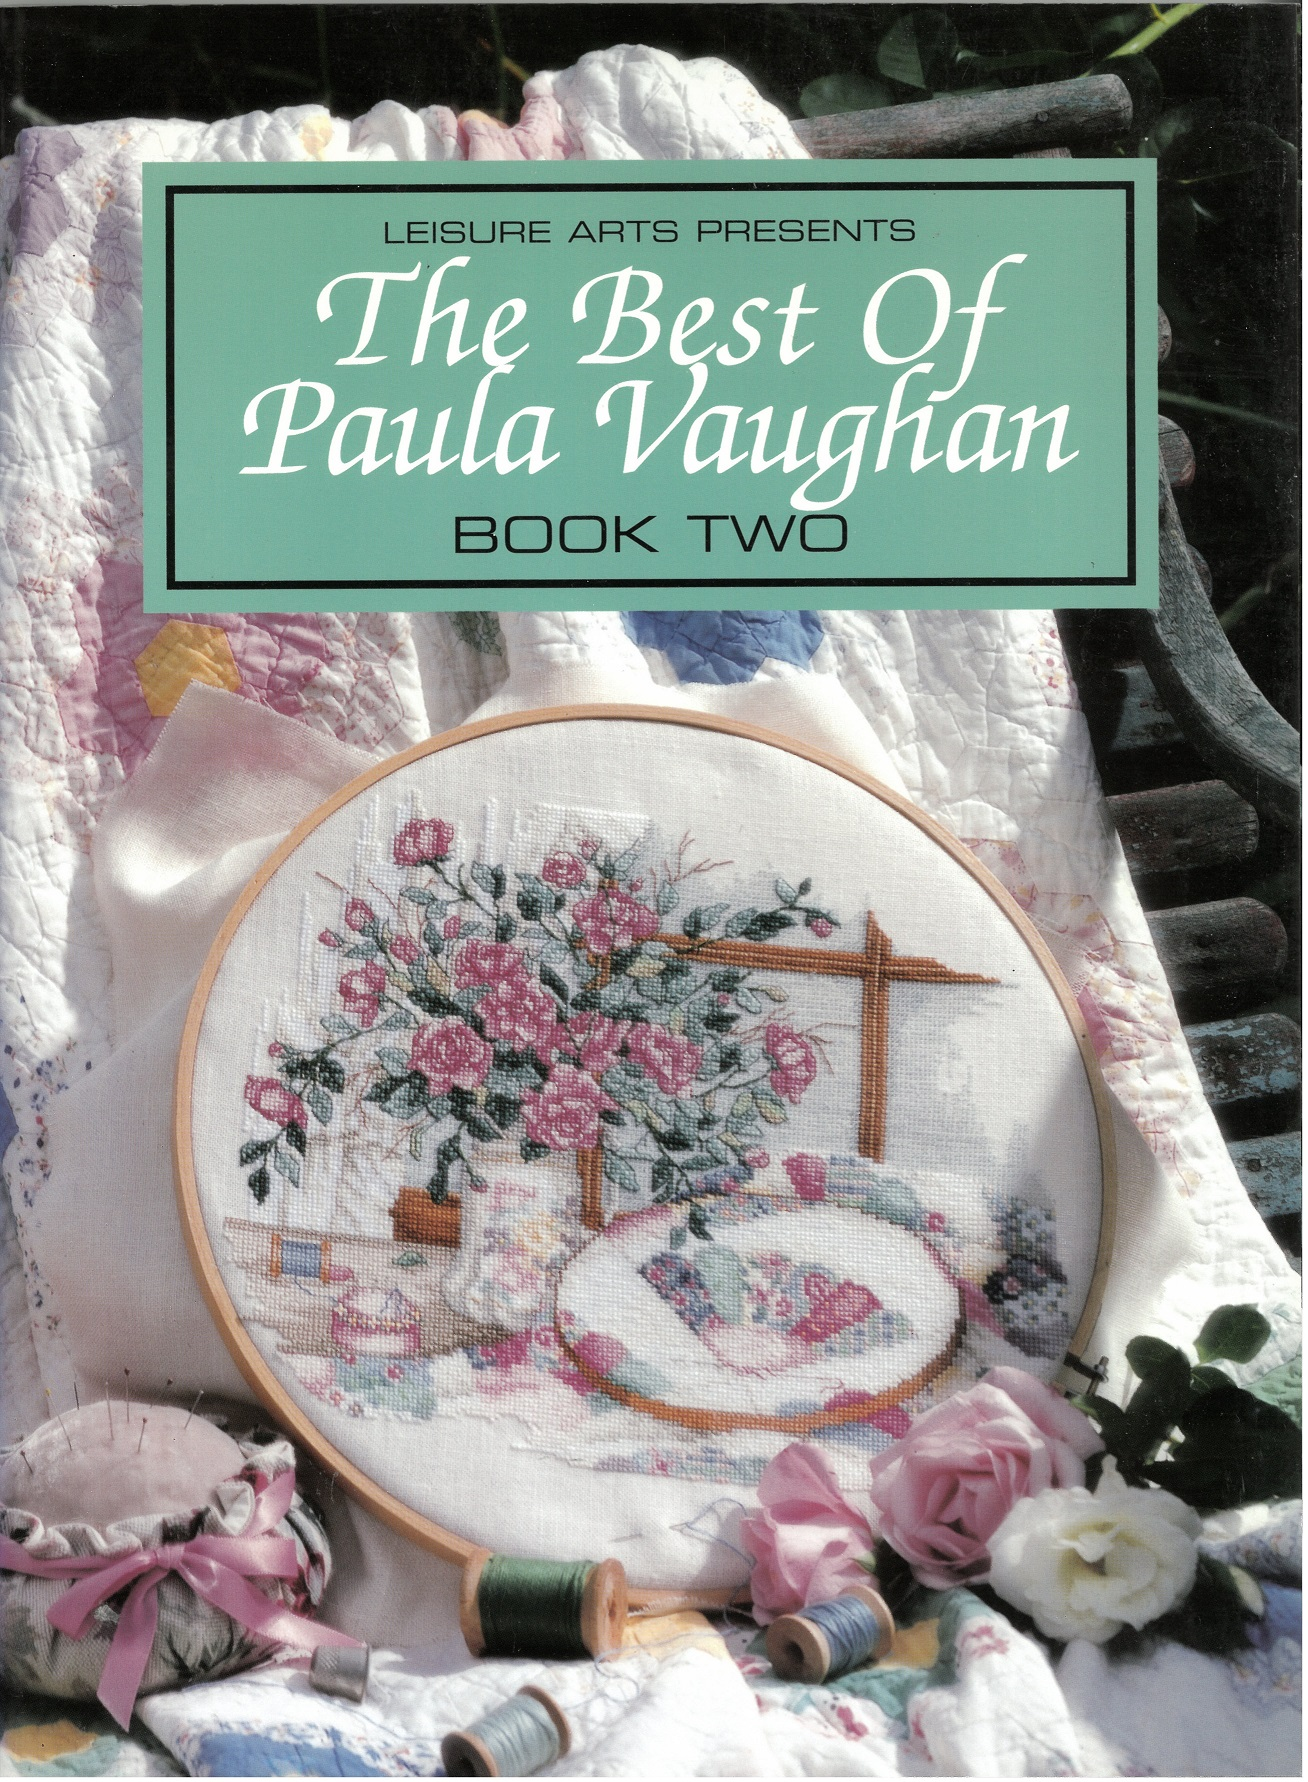 The Best of Paula Vaughan, Book Two